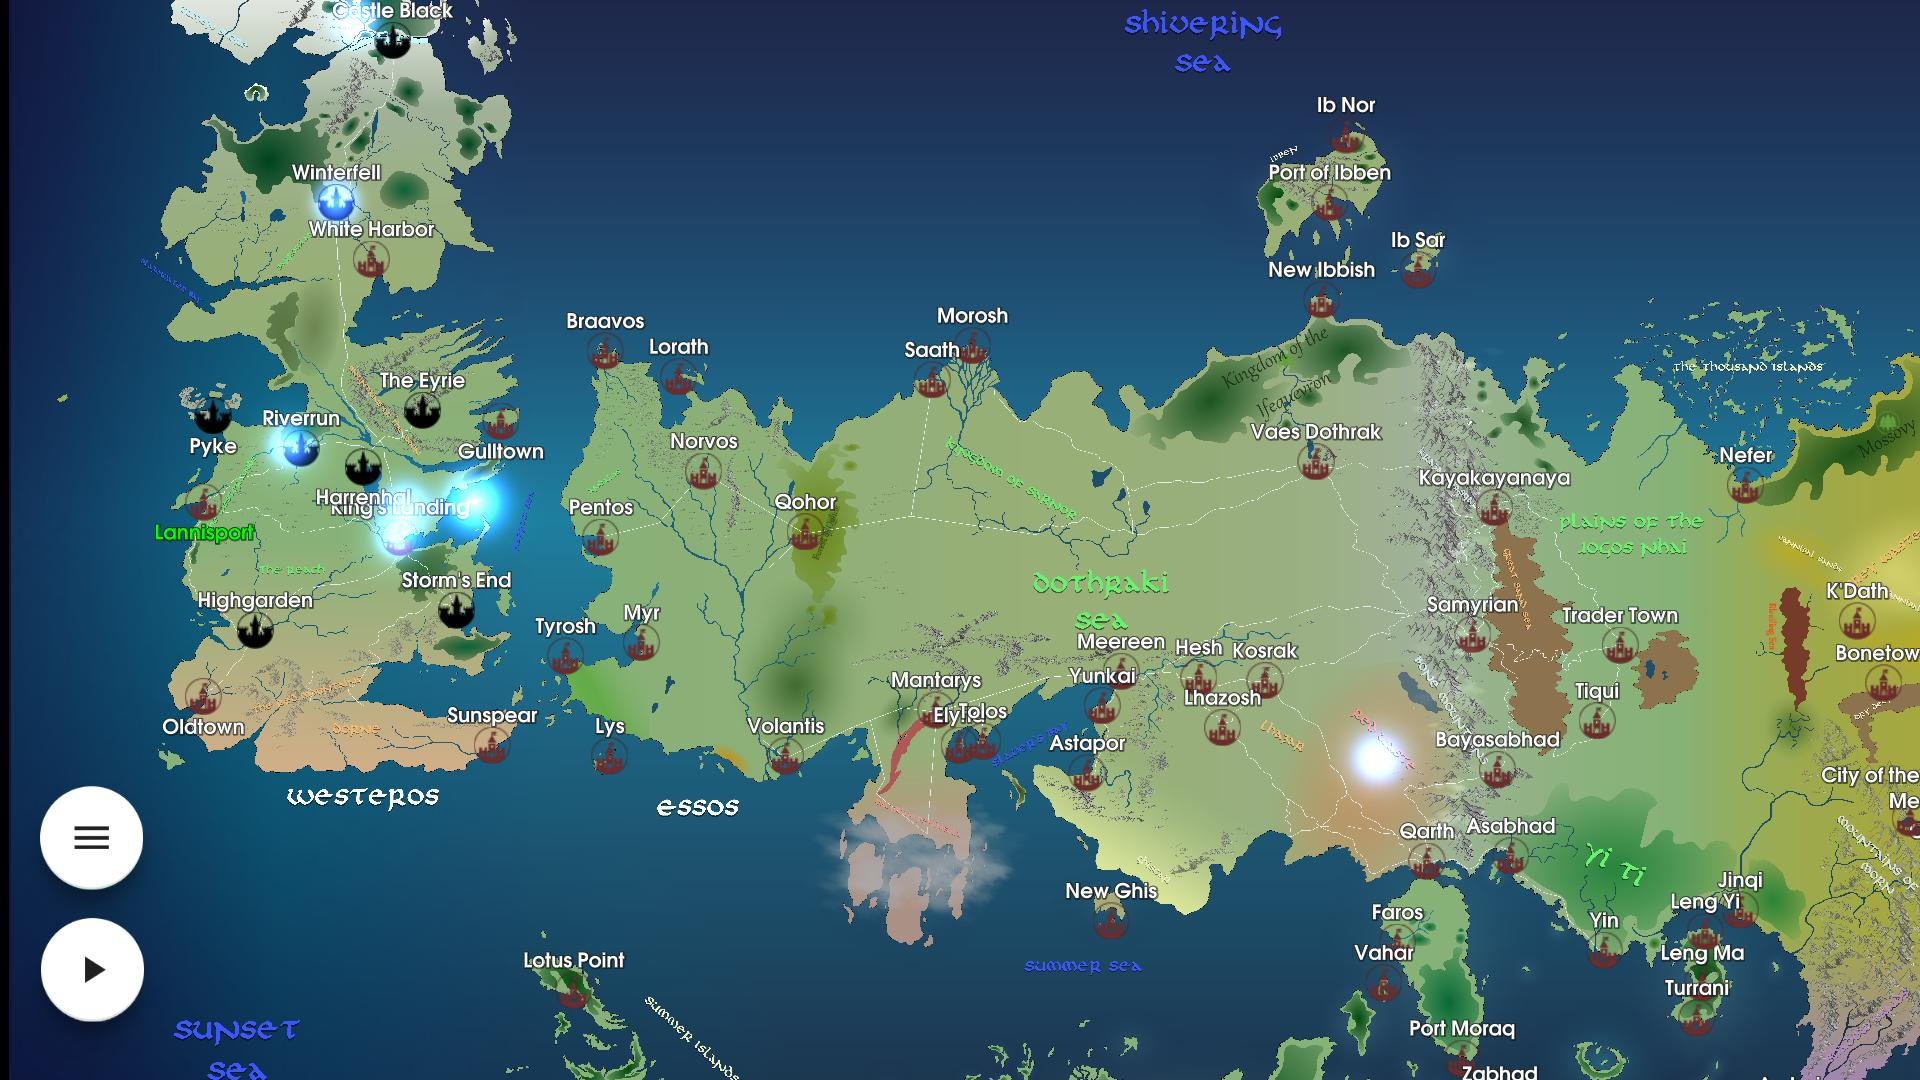 Map for Game of Thrones FREE for Android - APK Download Map Game on fictional maps, house maps, bully scholarship edition cheats maps, simple risk maps, interesting maps, all the locations of the death camp maps, prank maps, cartography maps, metro bus houston tx maps, jrpg maps, snes maps, all of westeros maps, fishing maps, epic d d maps, google maps, cool site maps, dvd maps, mmo maps, made up maps, dragon warrior monsters 2 maps,